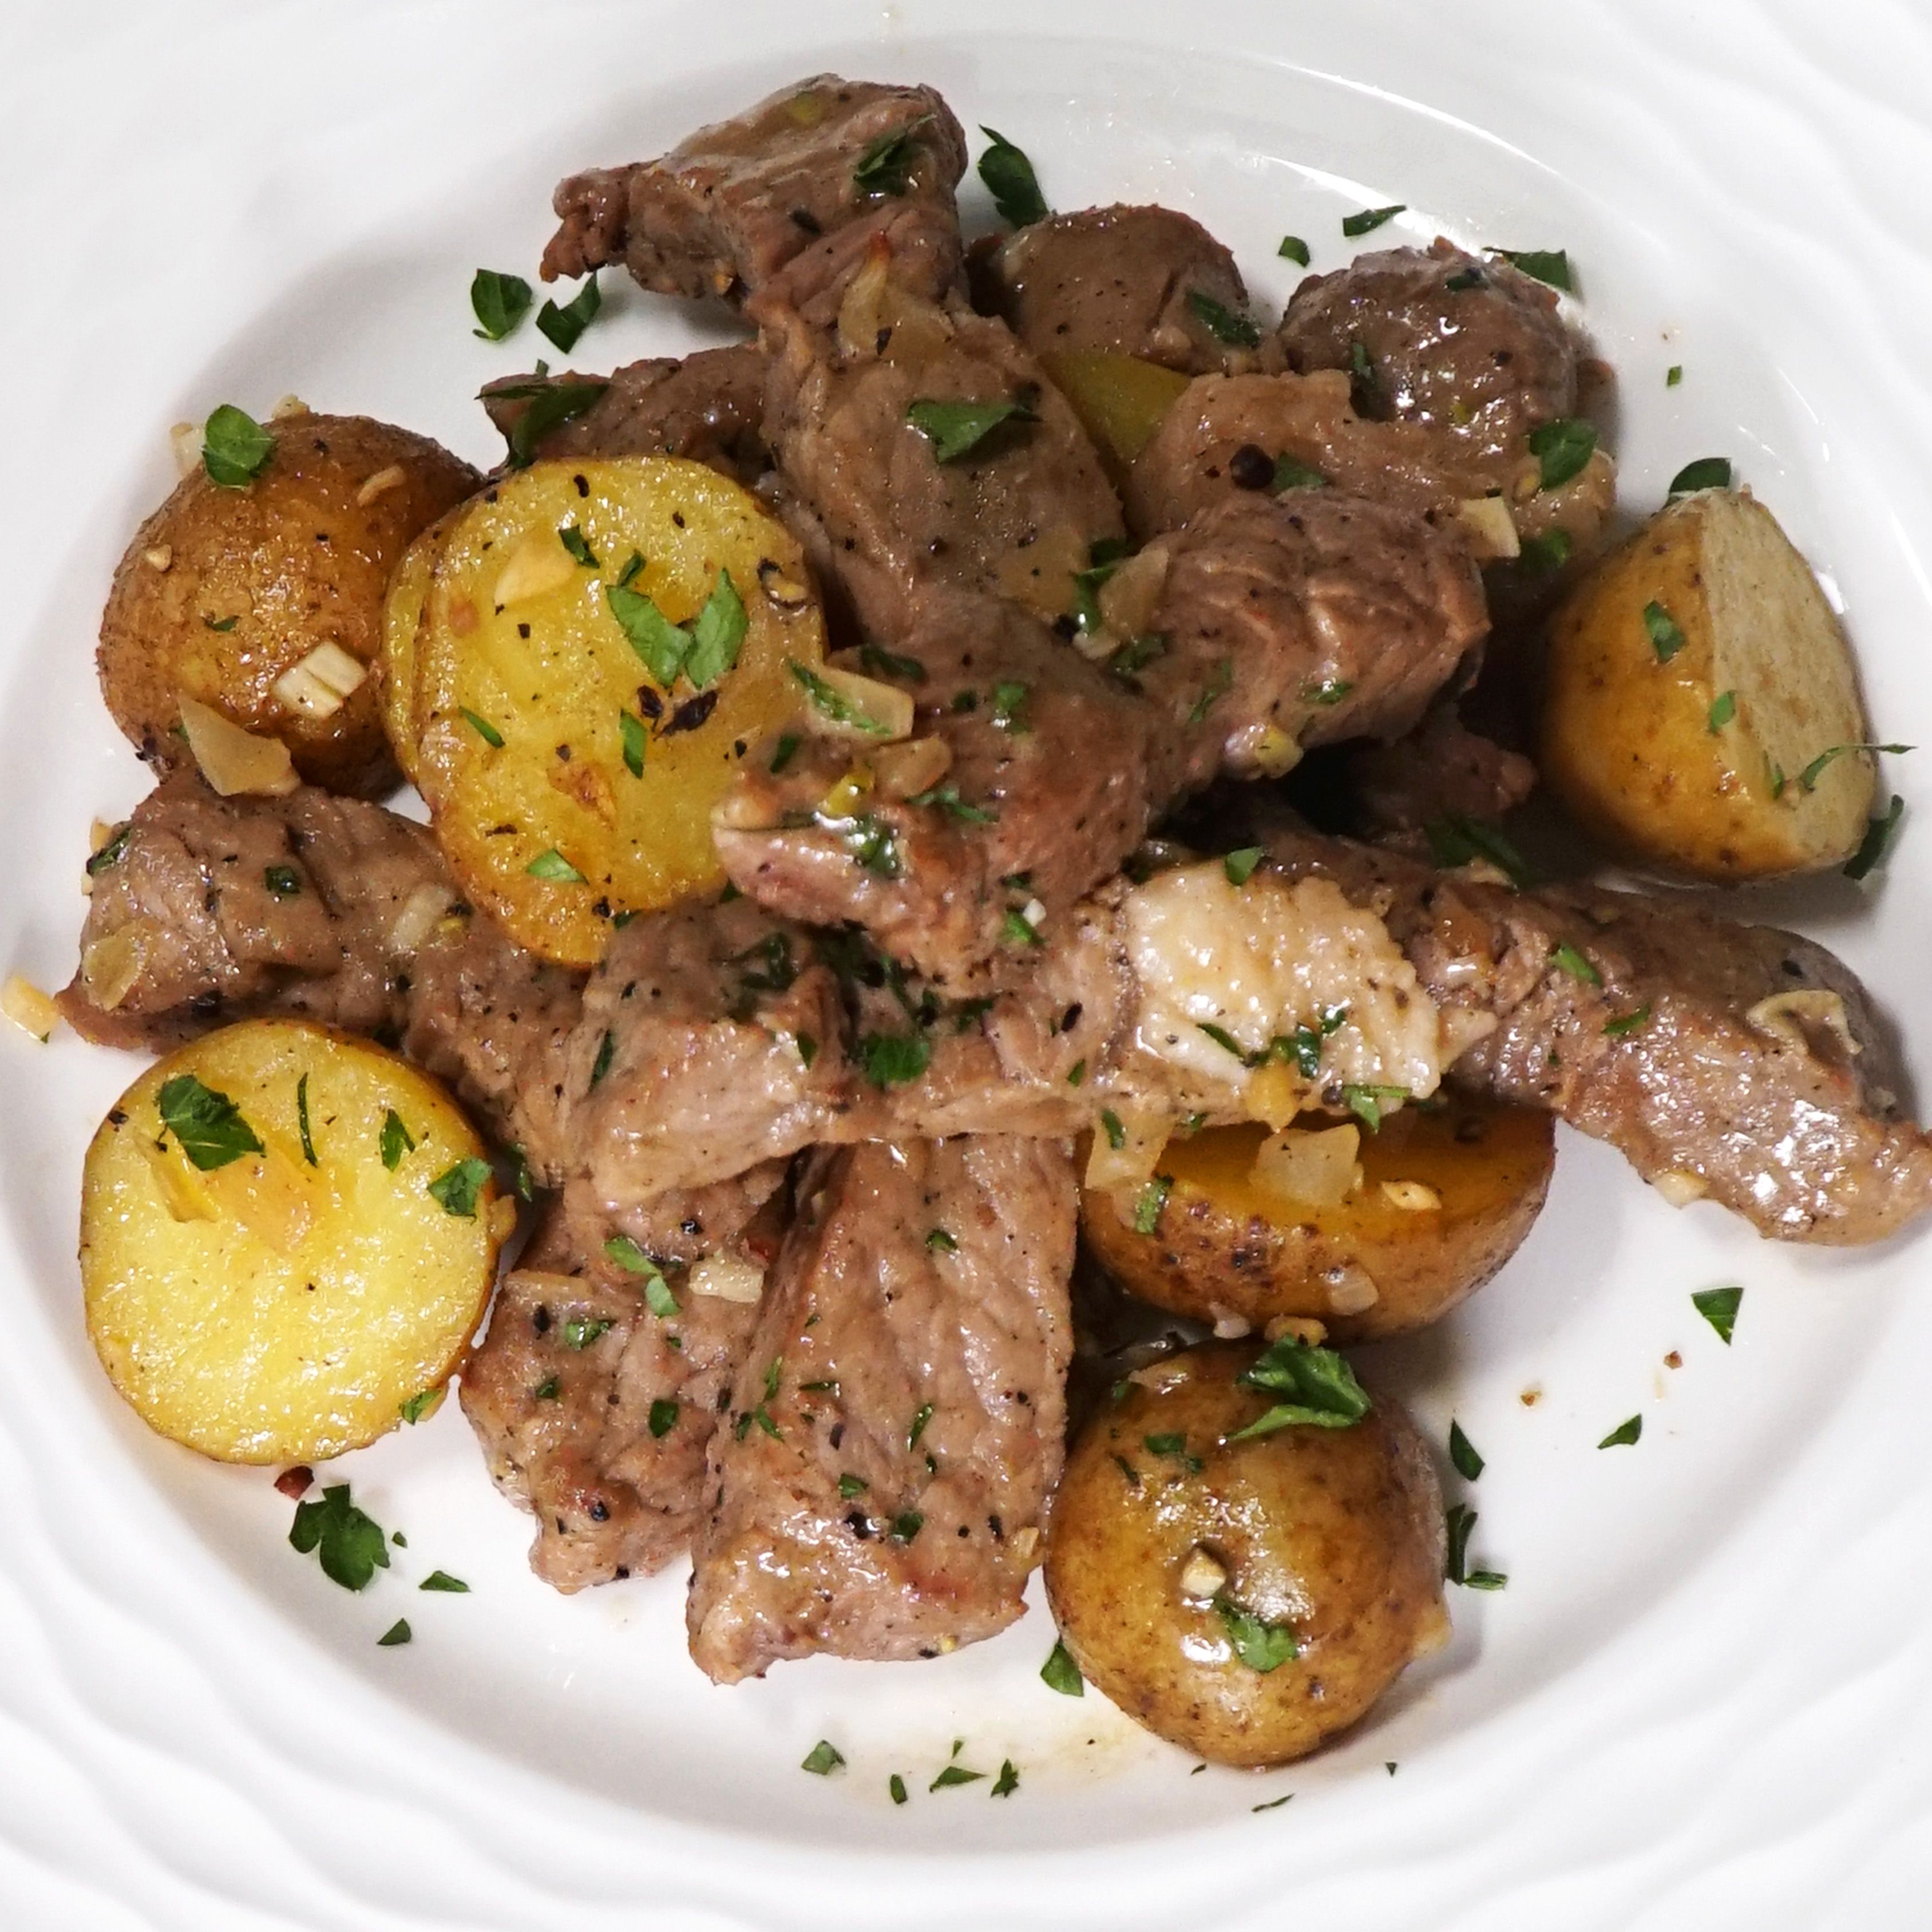 Resep Garlic Steak Potato Resep Resep Daging Sapi Resep Daging Resep